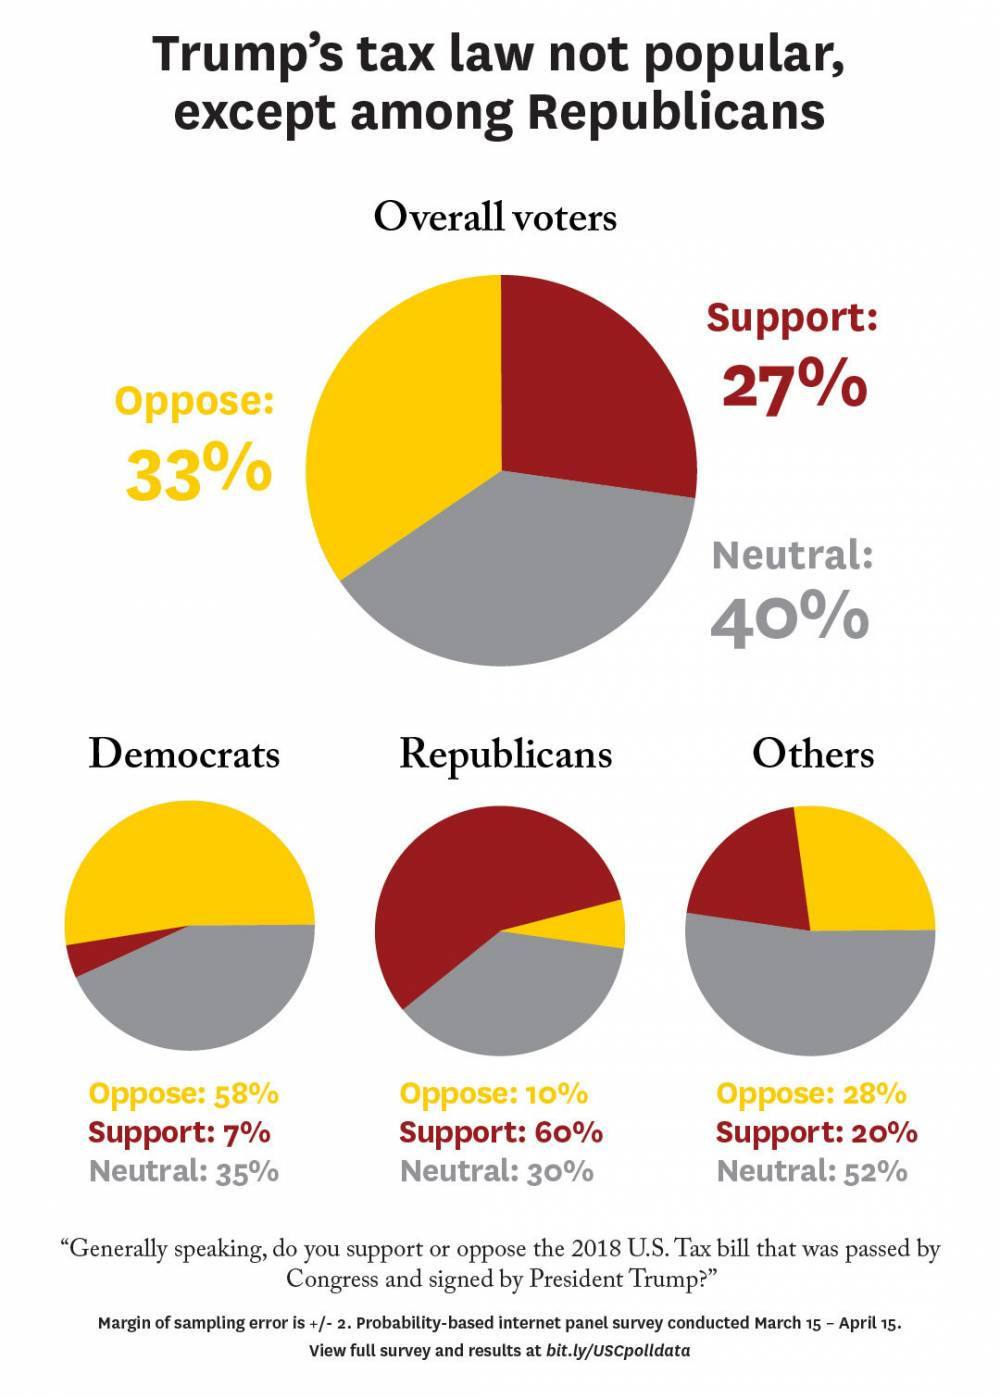 Graphic: Trump's tax law not popular, except among Republicans